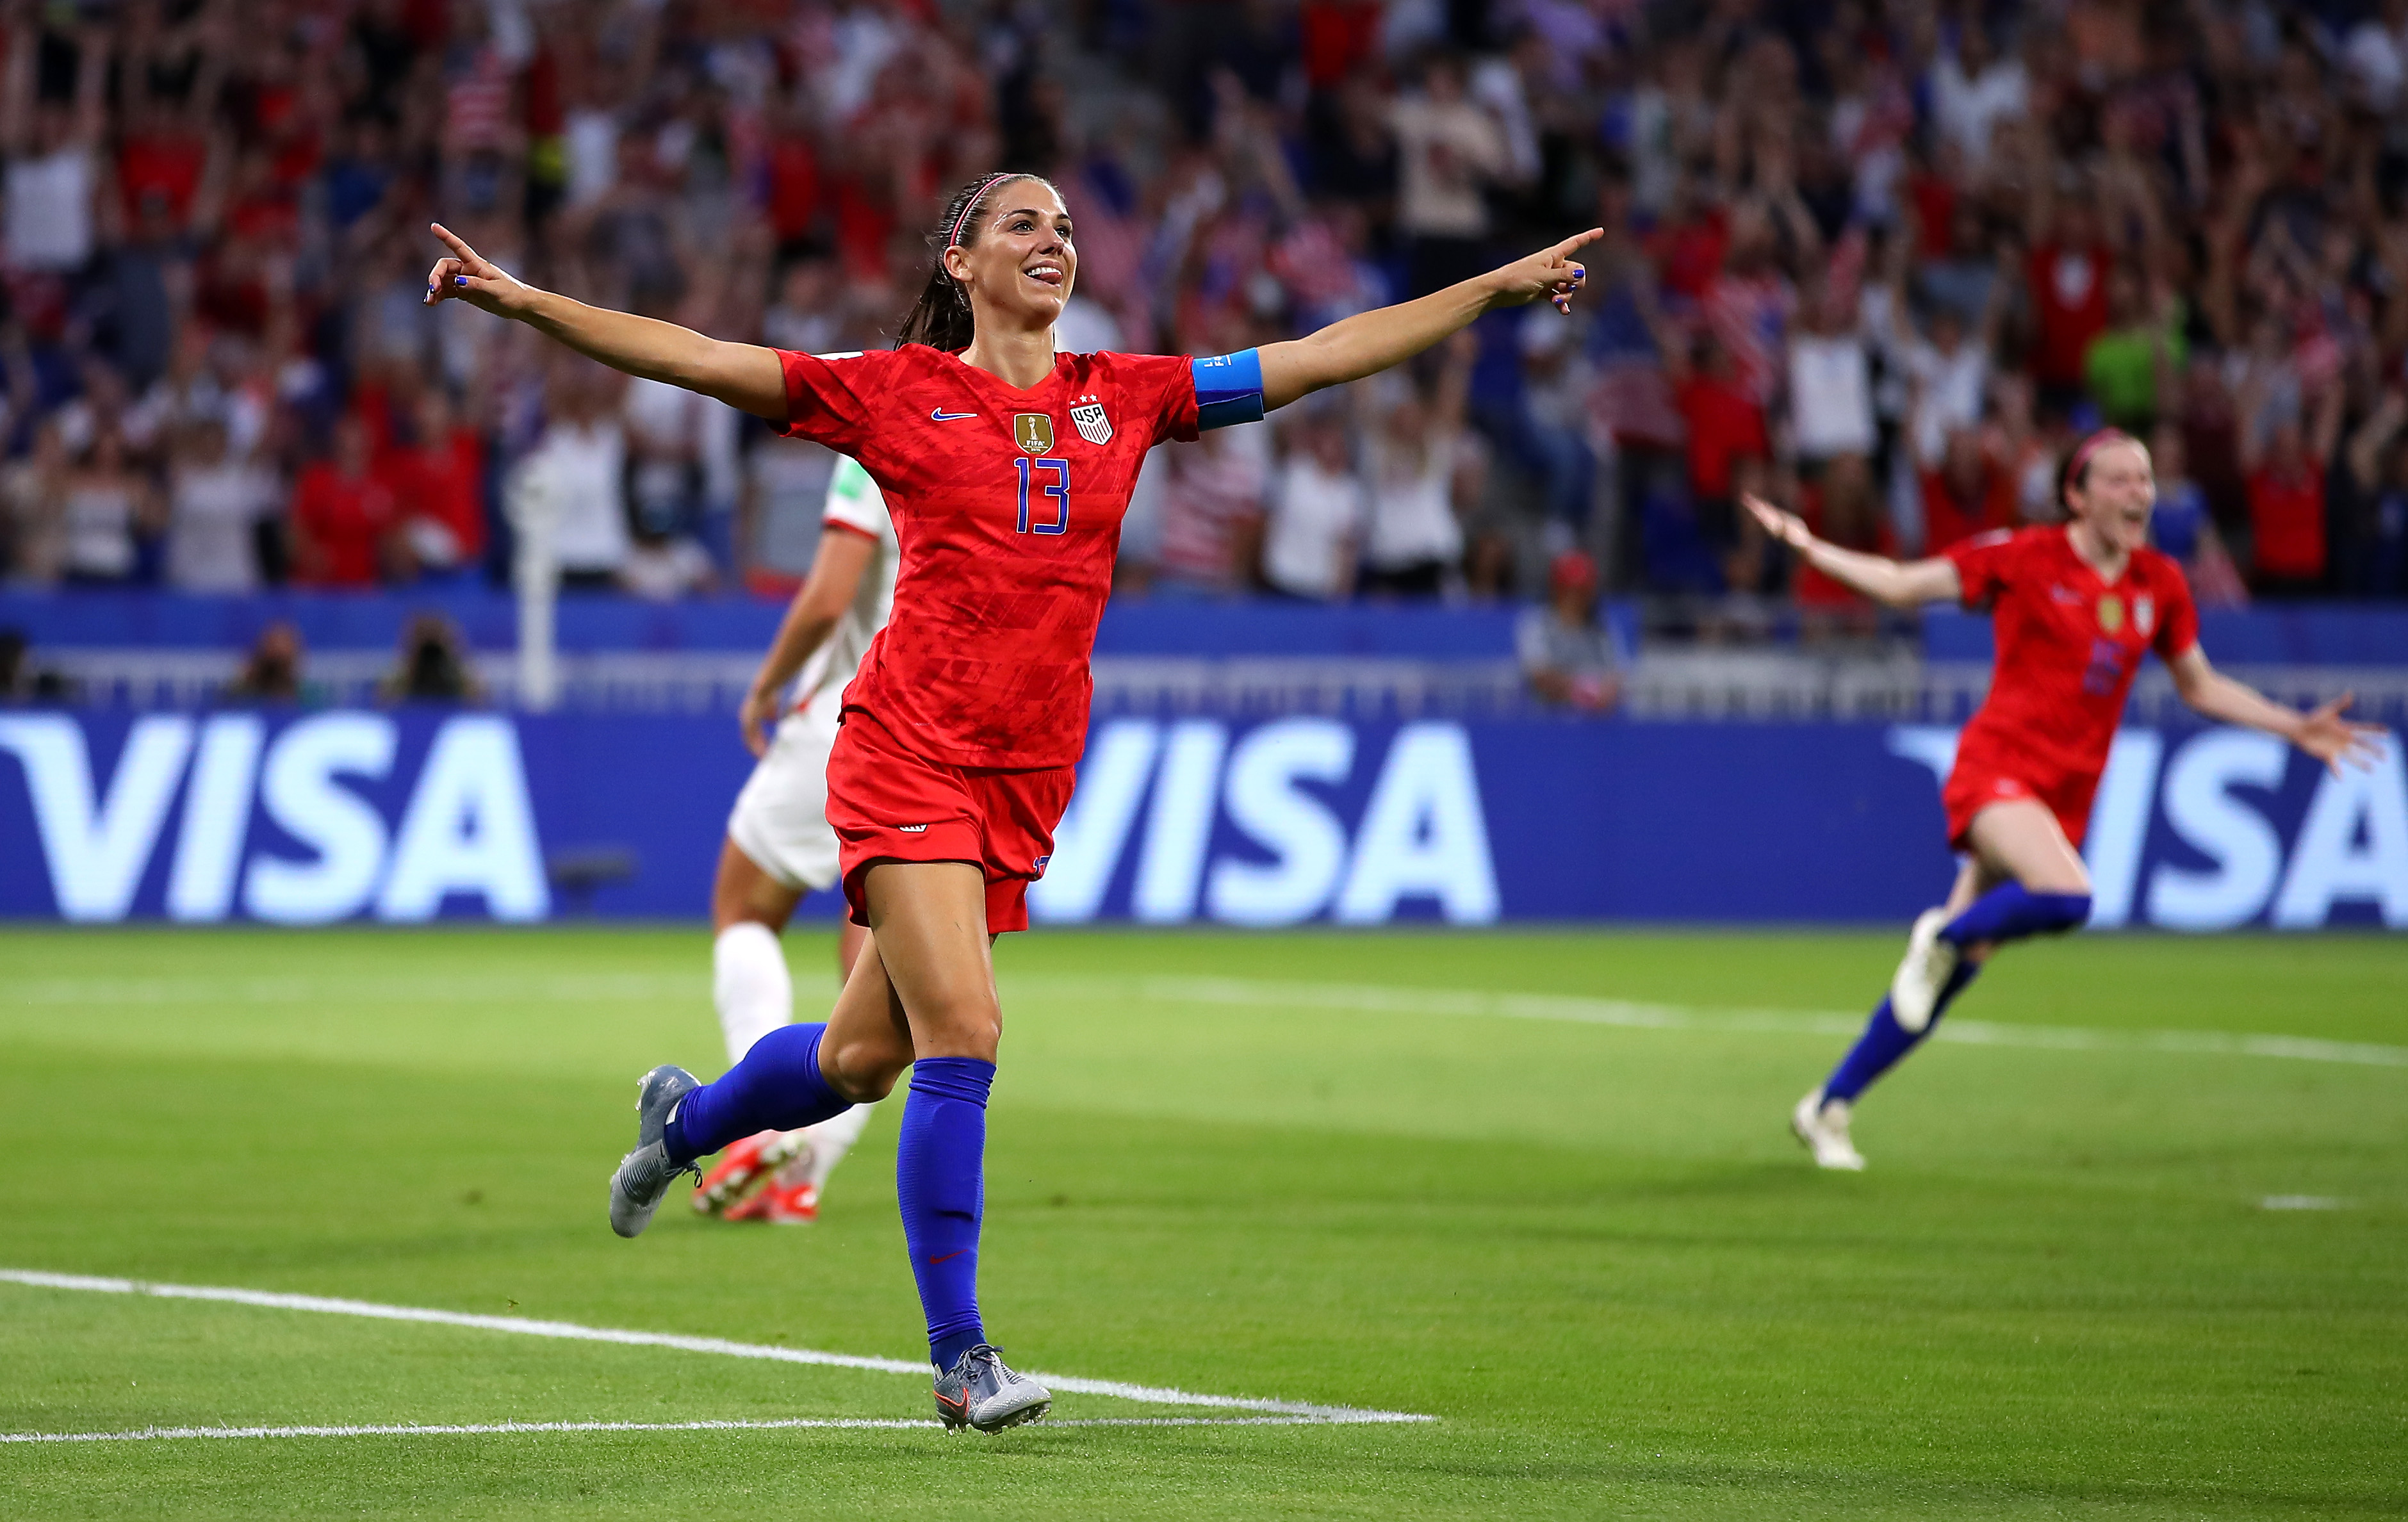 US Advances To Women's World Cup Final With Narrow Win Over England thumbnail